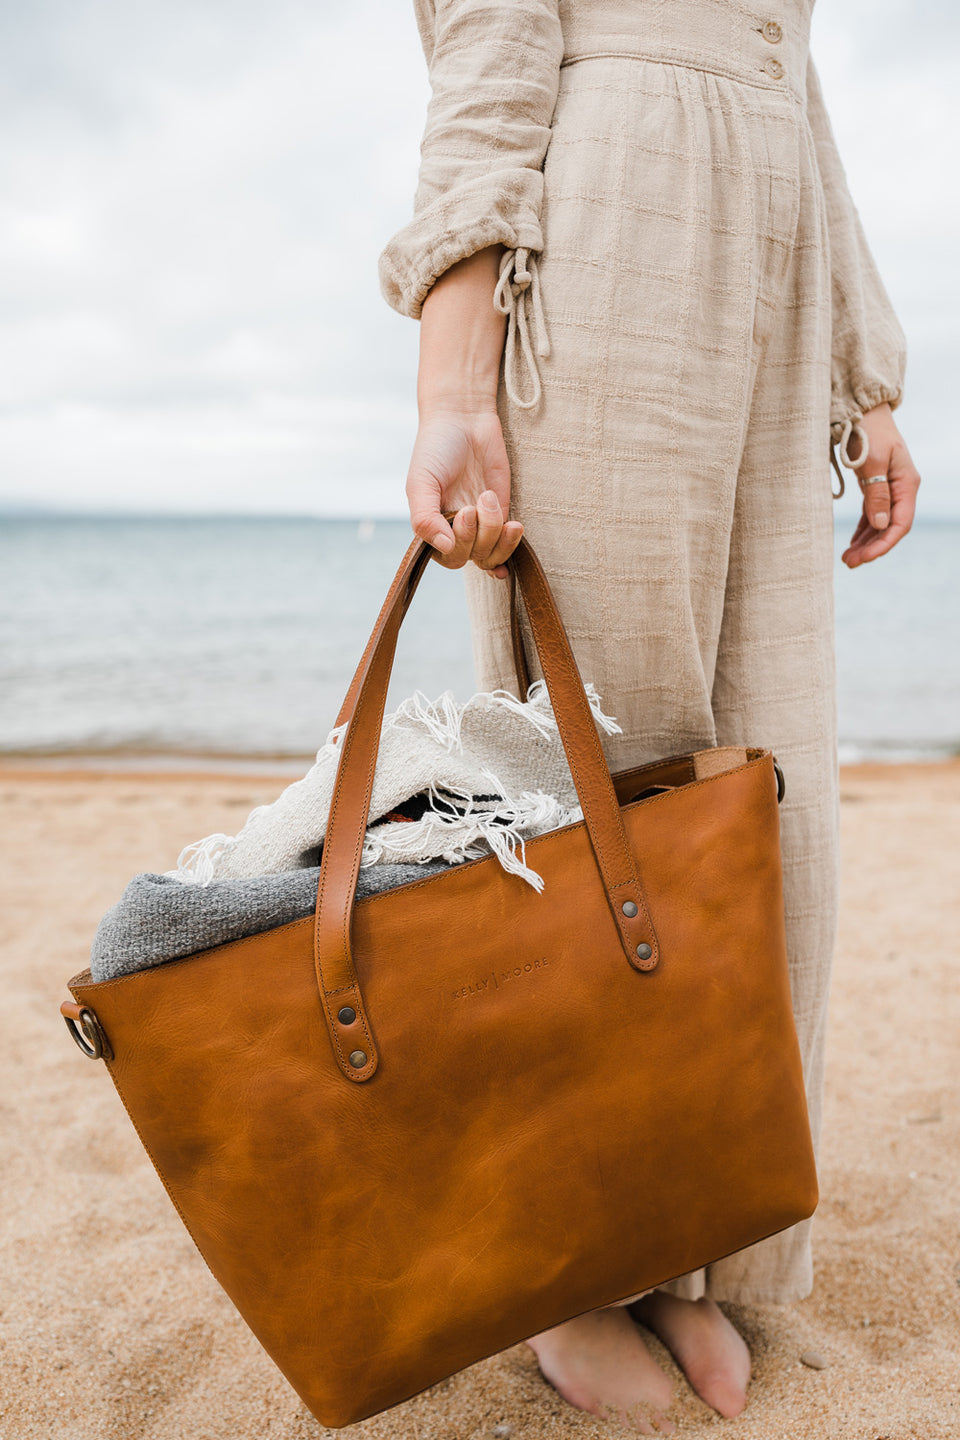 An Oversized Tote For Your Beautifully Full Life